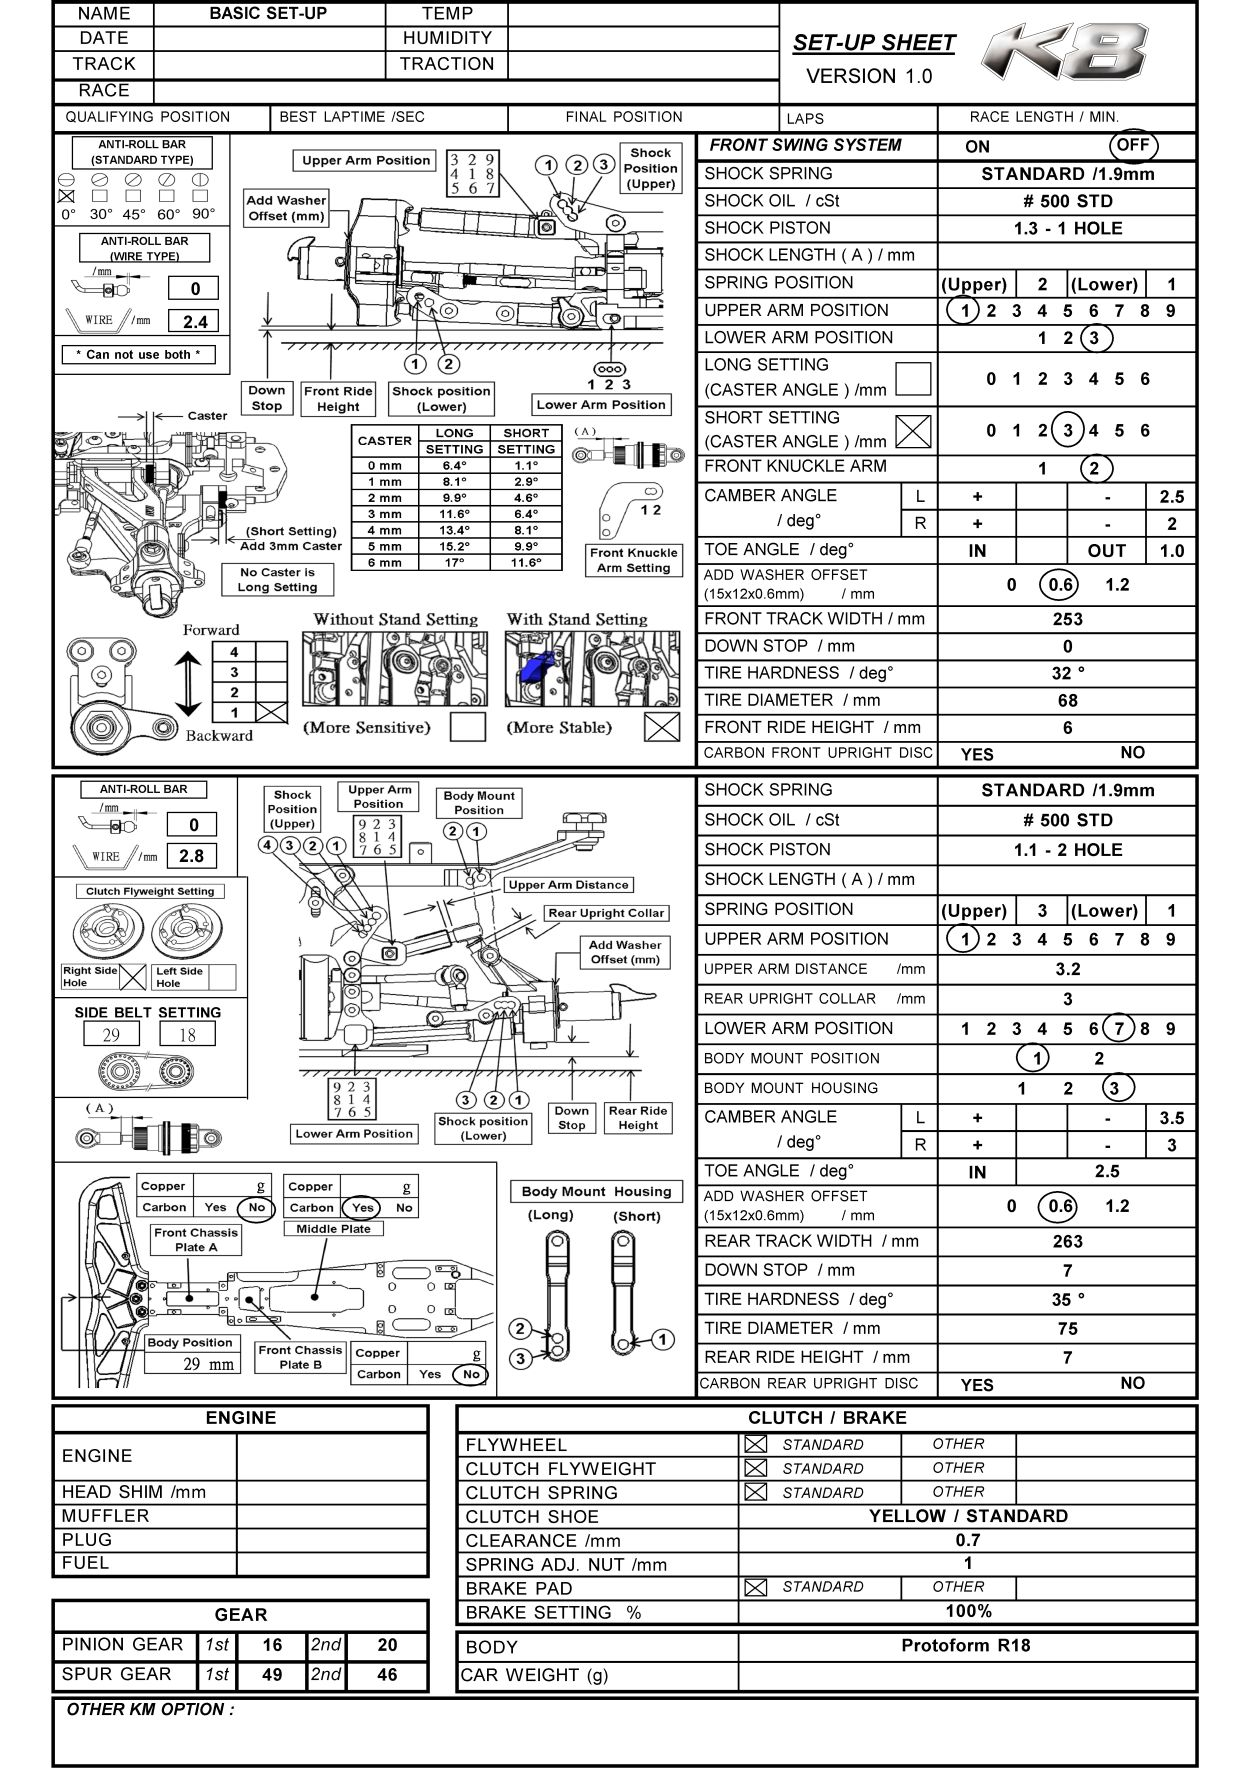 Km 56 rc manual km 56 rce combi engine array h k1 setting sheet and instruction manual km group rh km fandeluxe Gallery